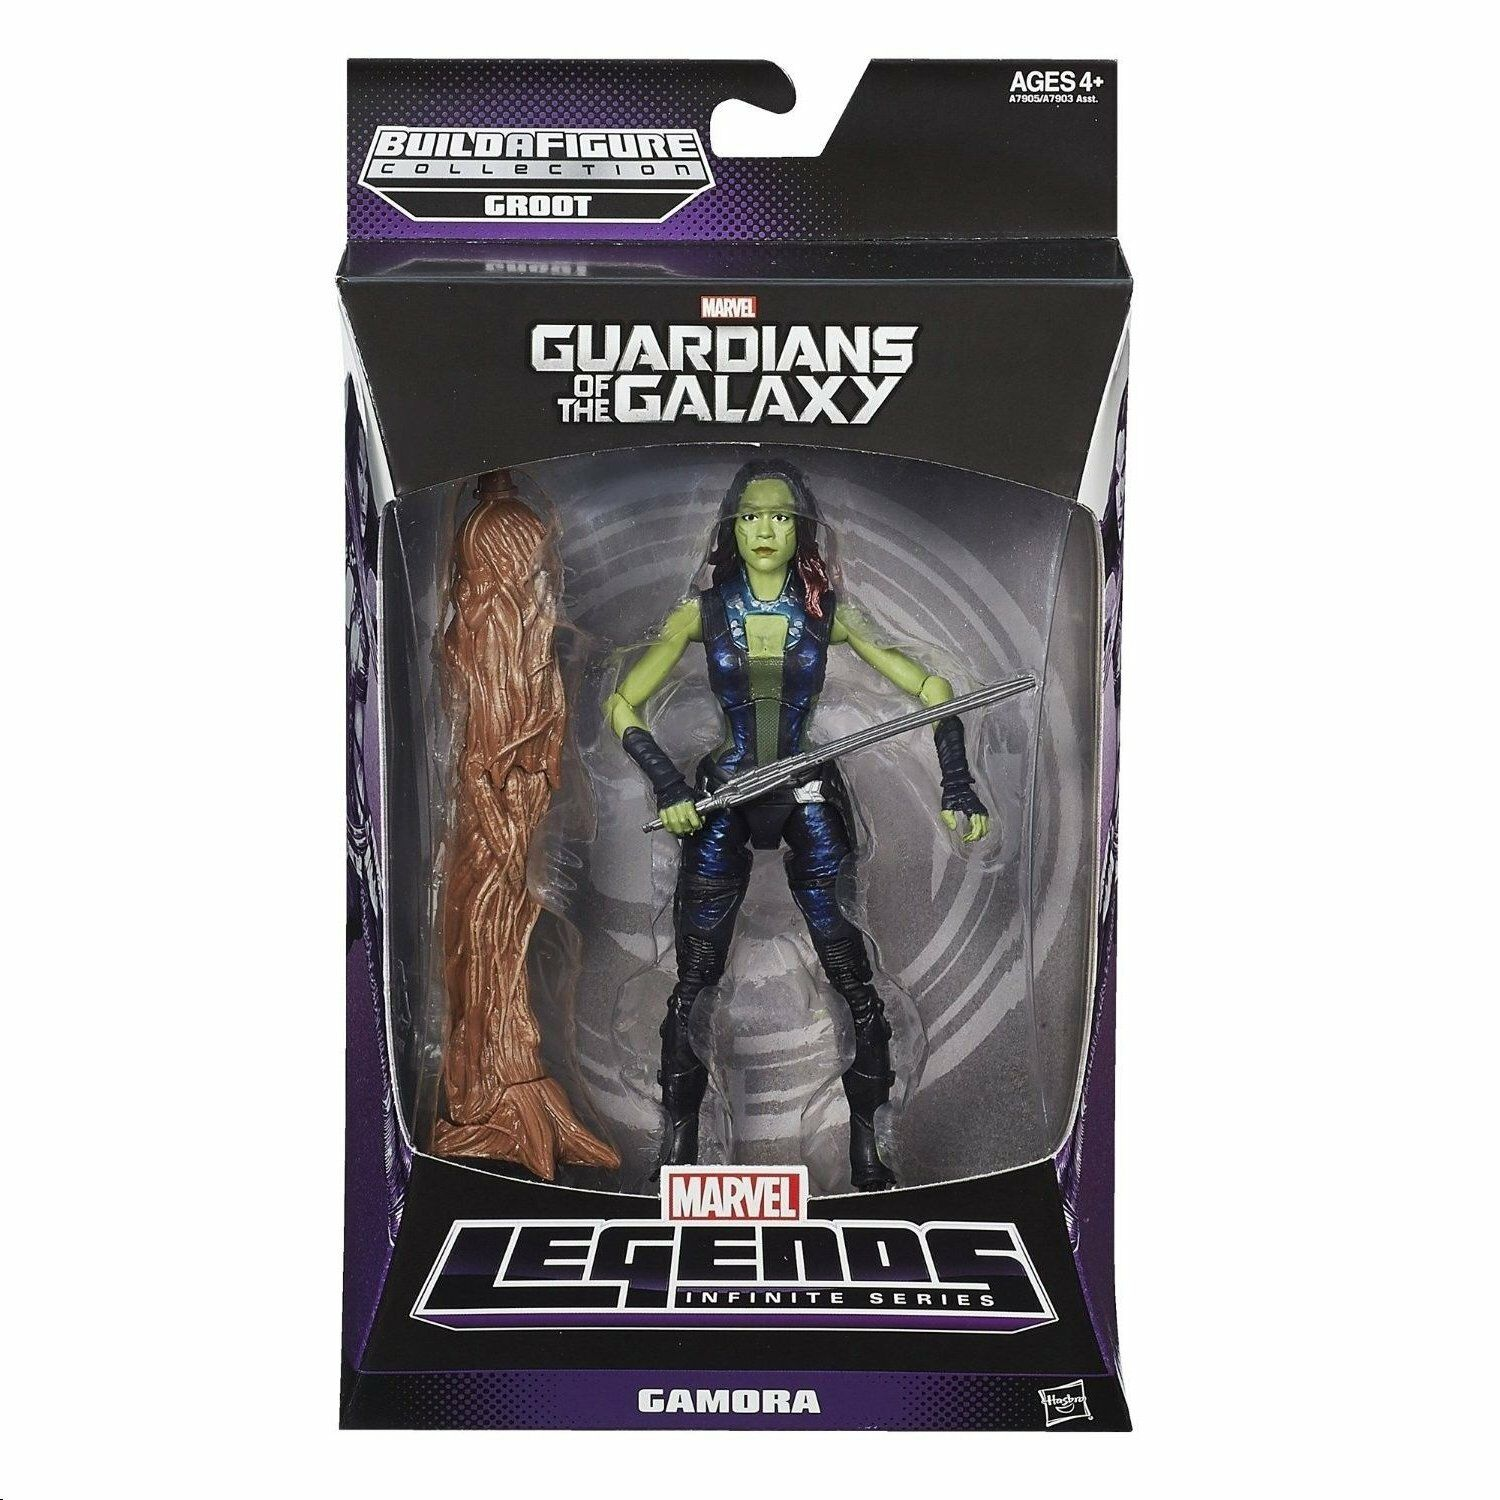 GAMORA MARVEL LEGENDS GUARDIANS OF THE GALAXY ( GROOT SERIES ) ACTION FIGURE